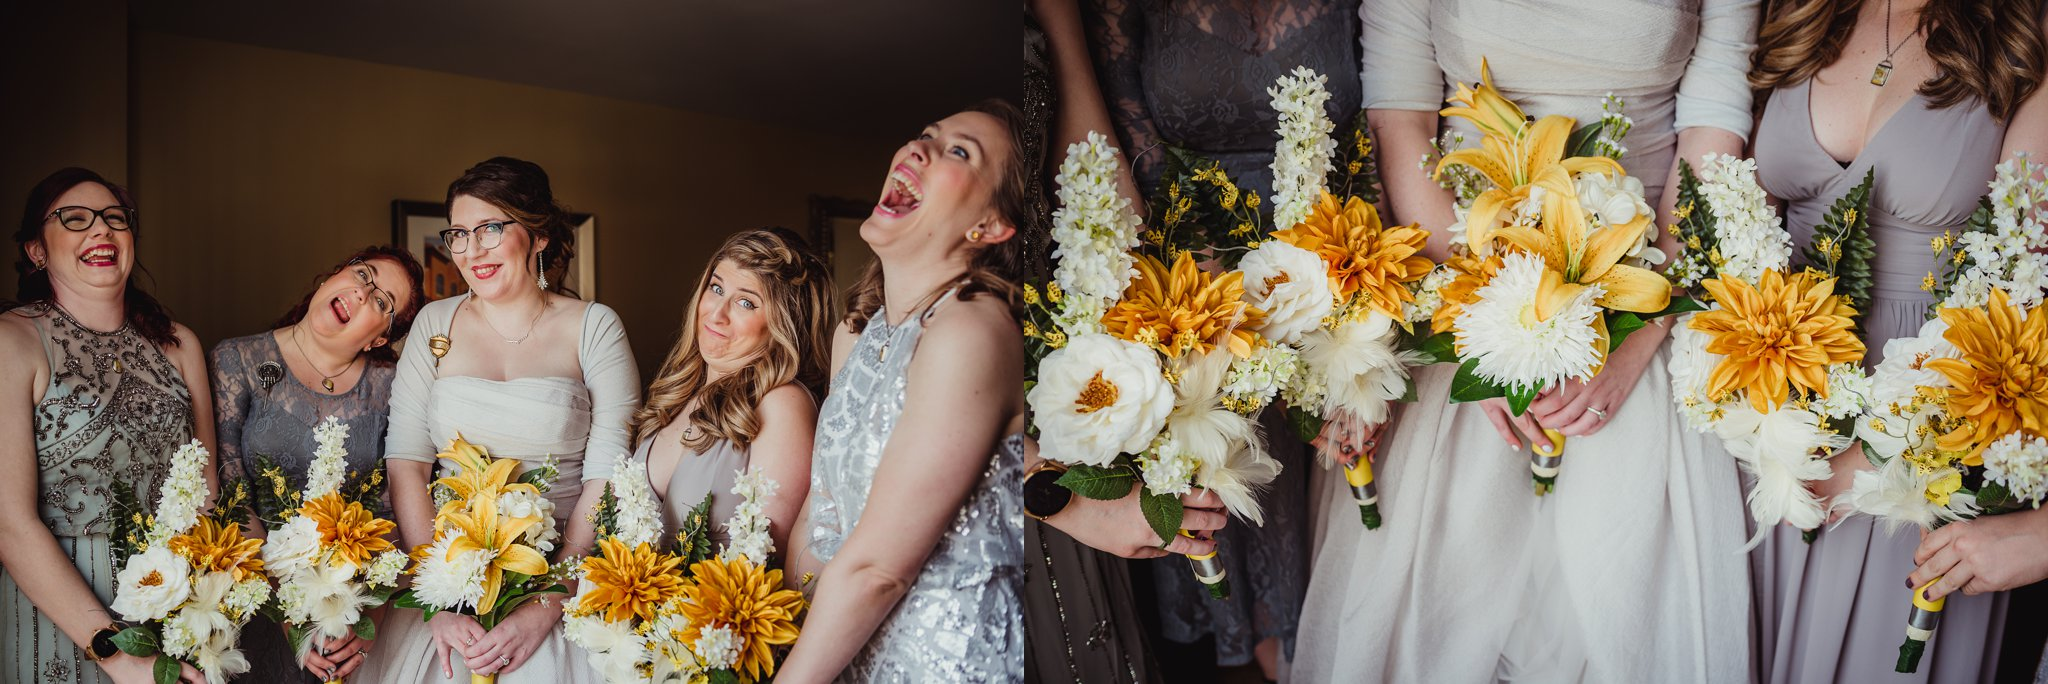 The bride and her bridesmaids getting ready in downtown Raleigh before her wedding day, with Rose Trail Images.